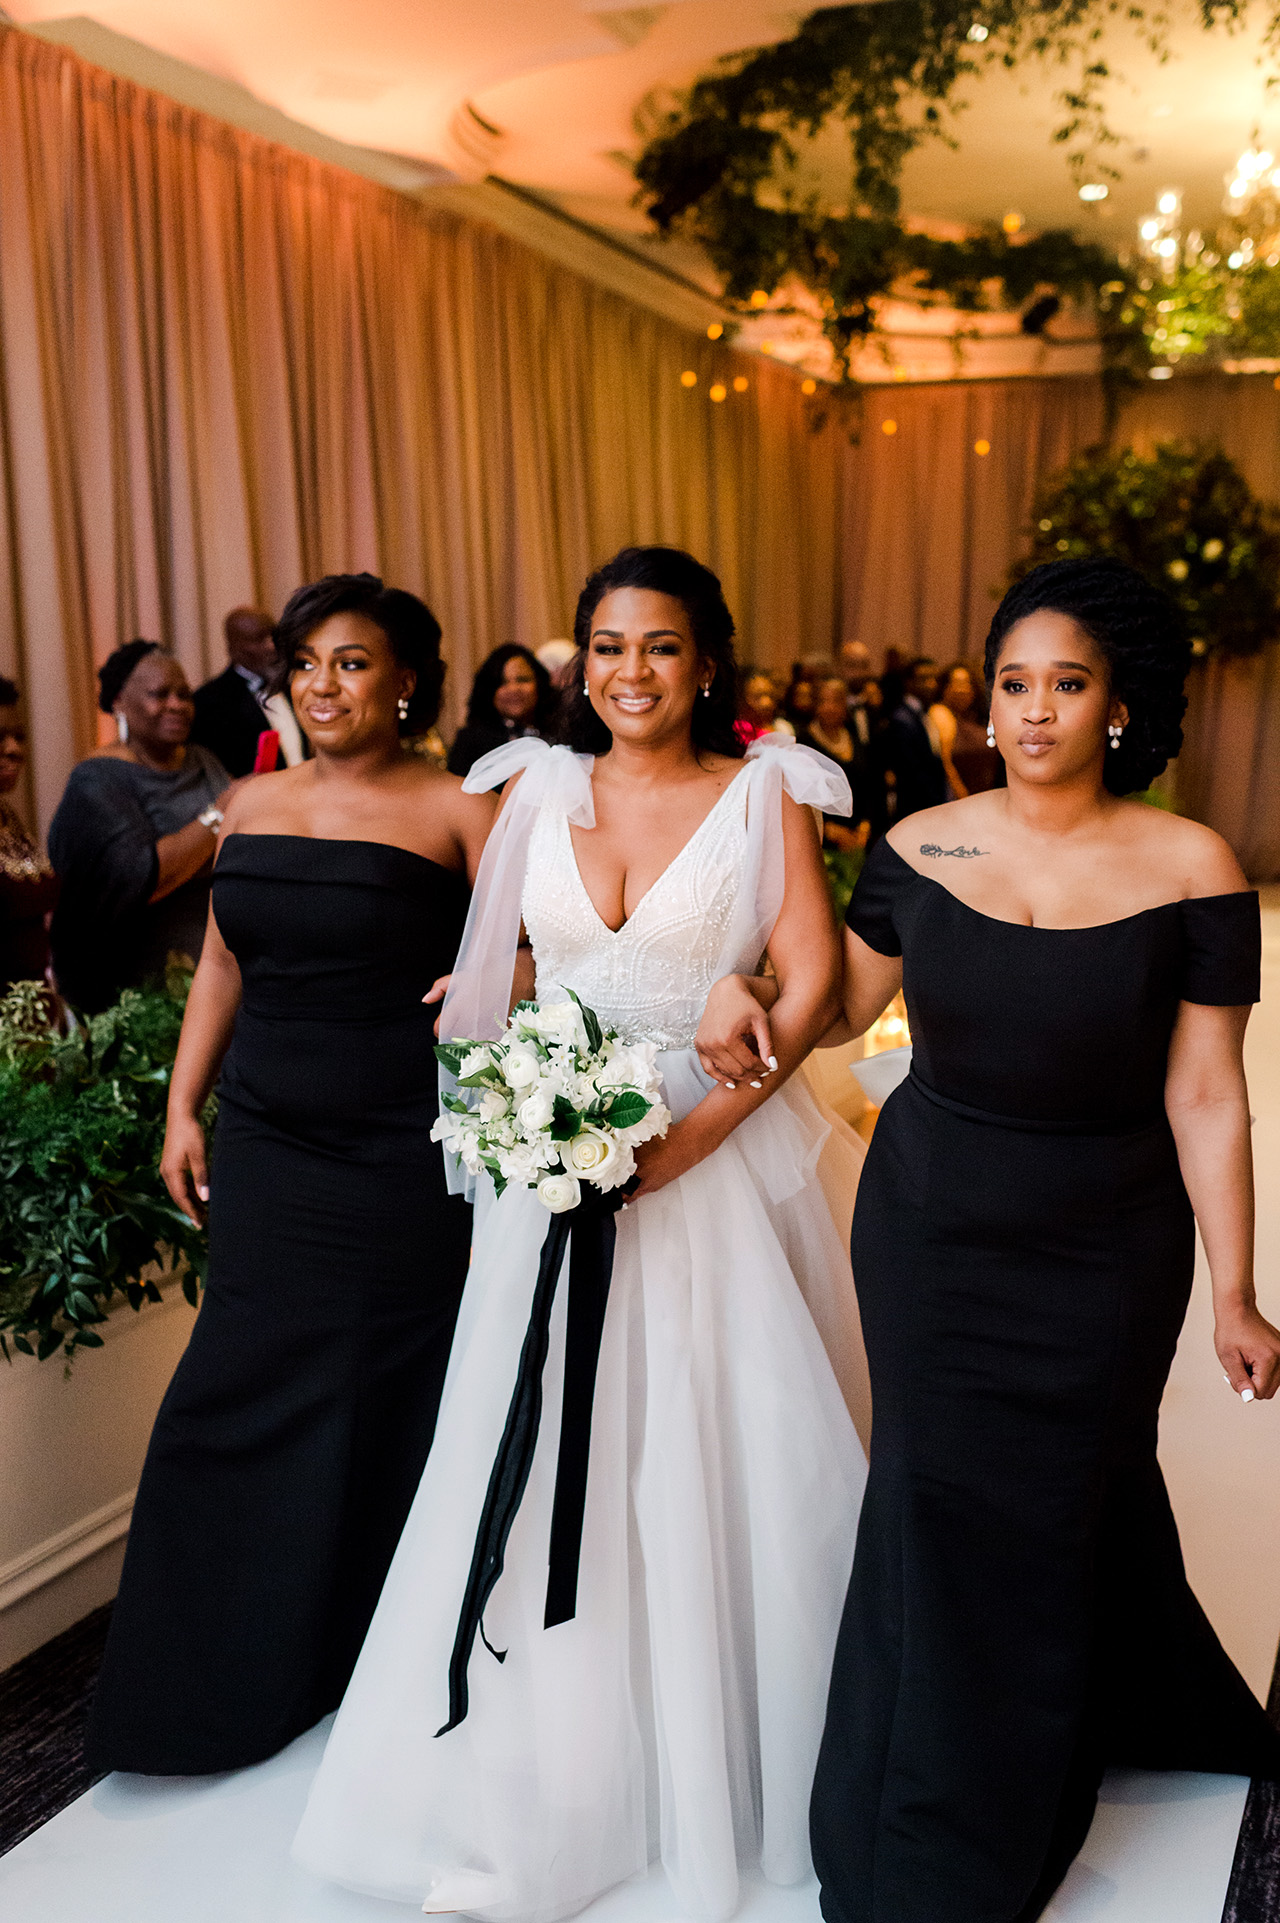 denita john wedding ceremony processional bride and bridesmaids